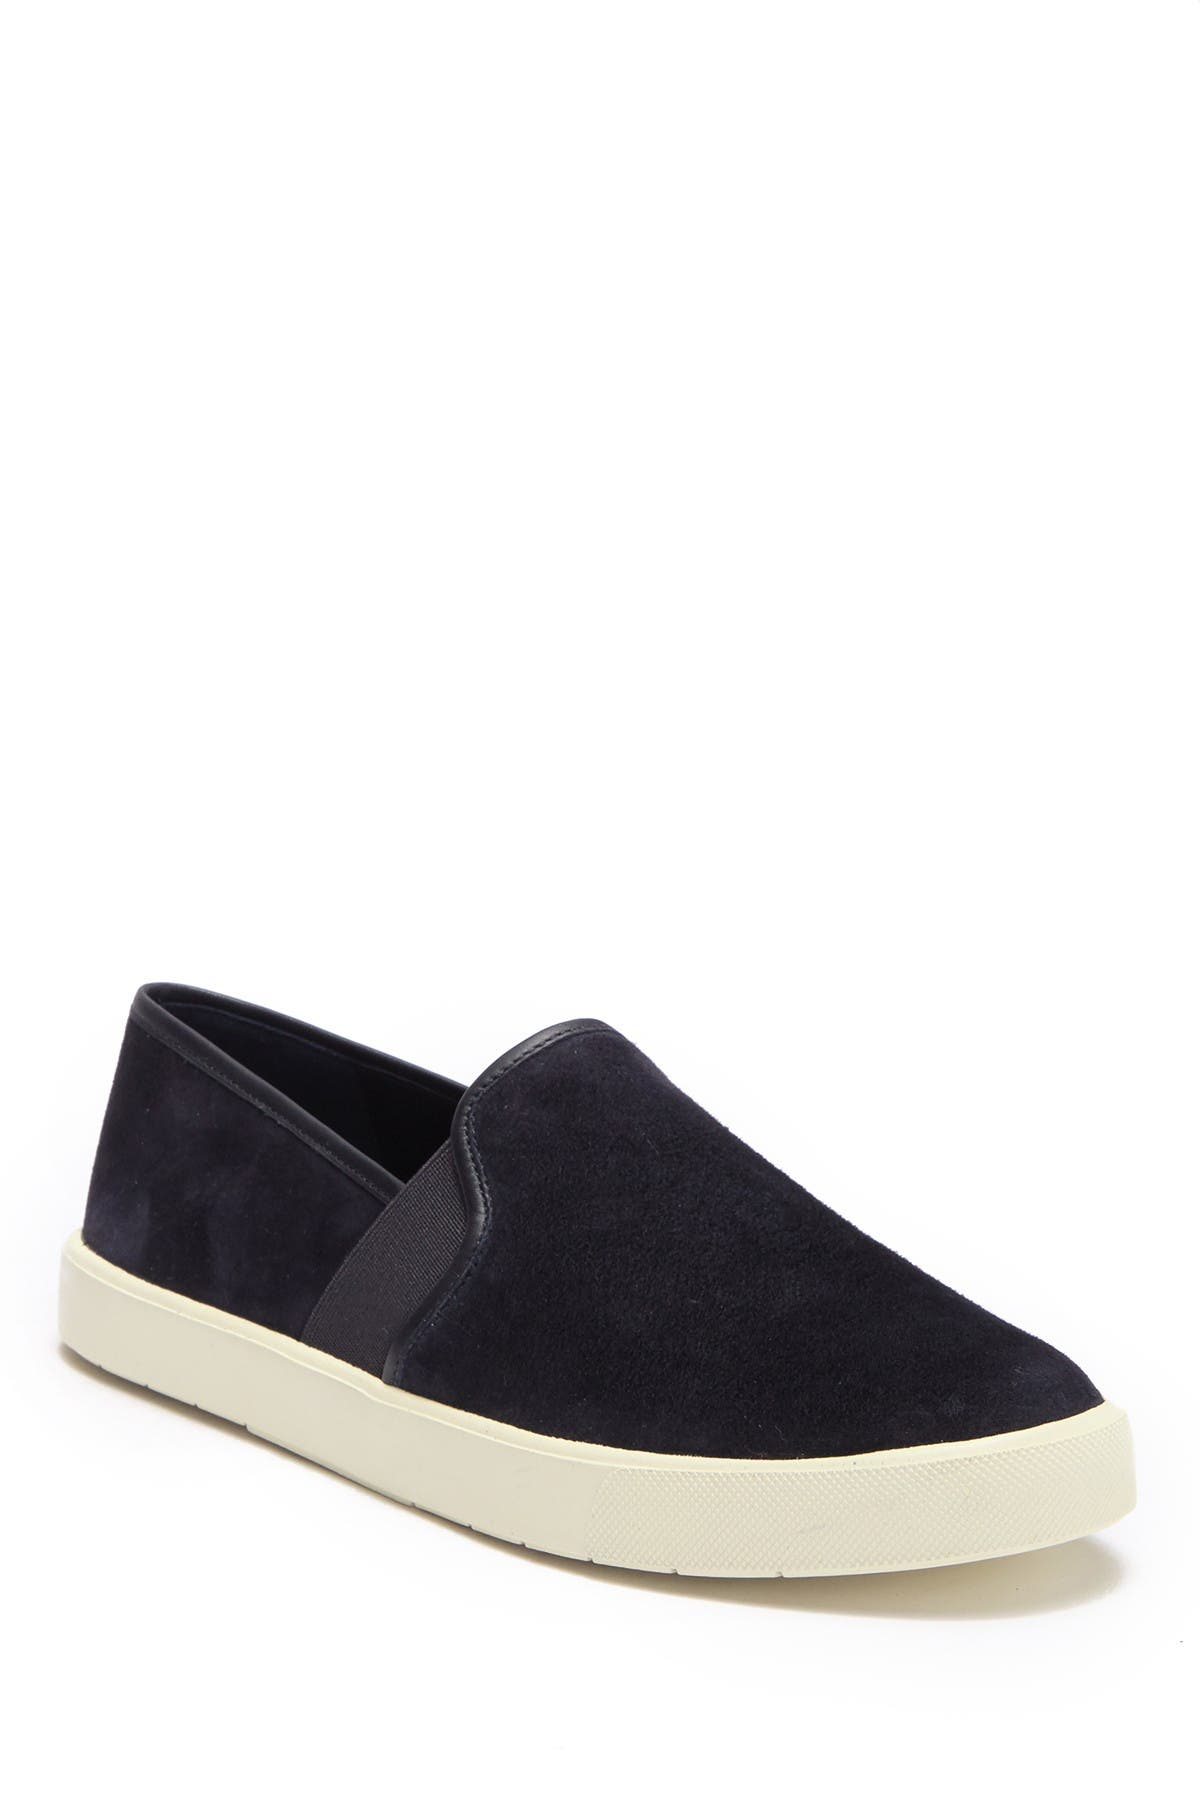 Image of Vince Preston Slip-On Suede Sneaker